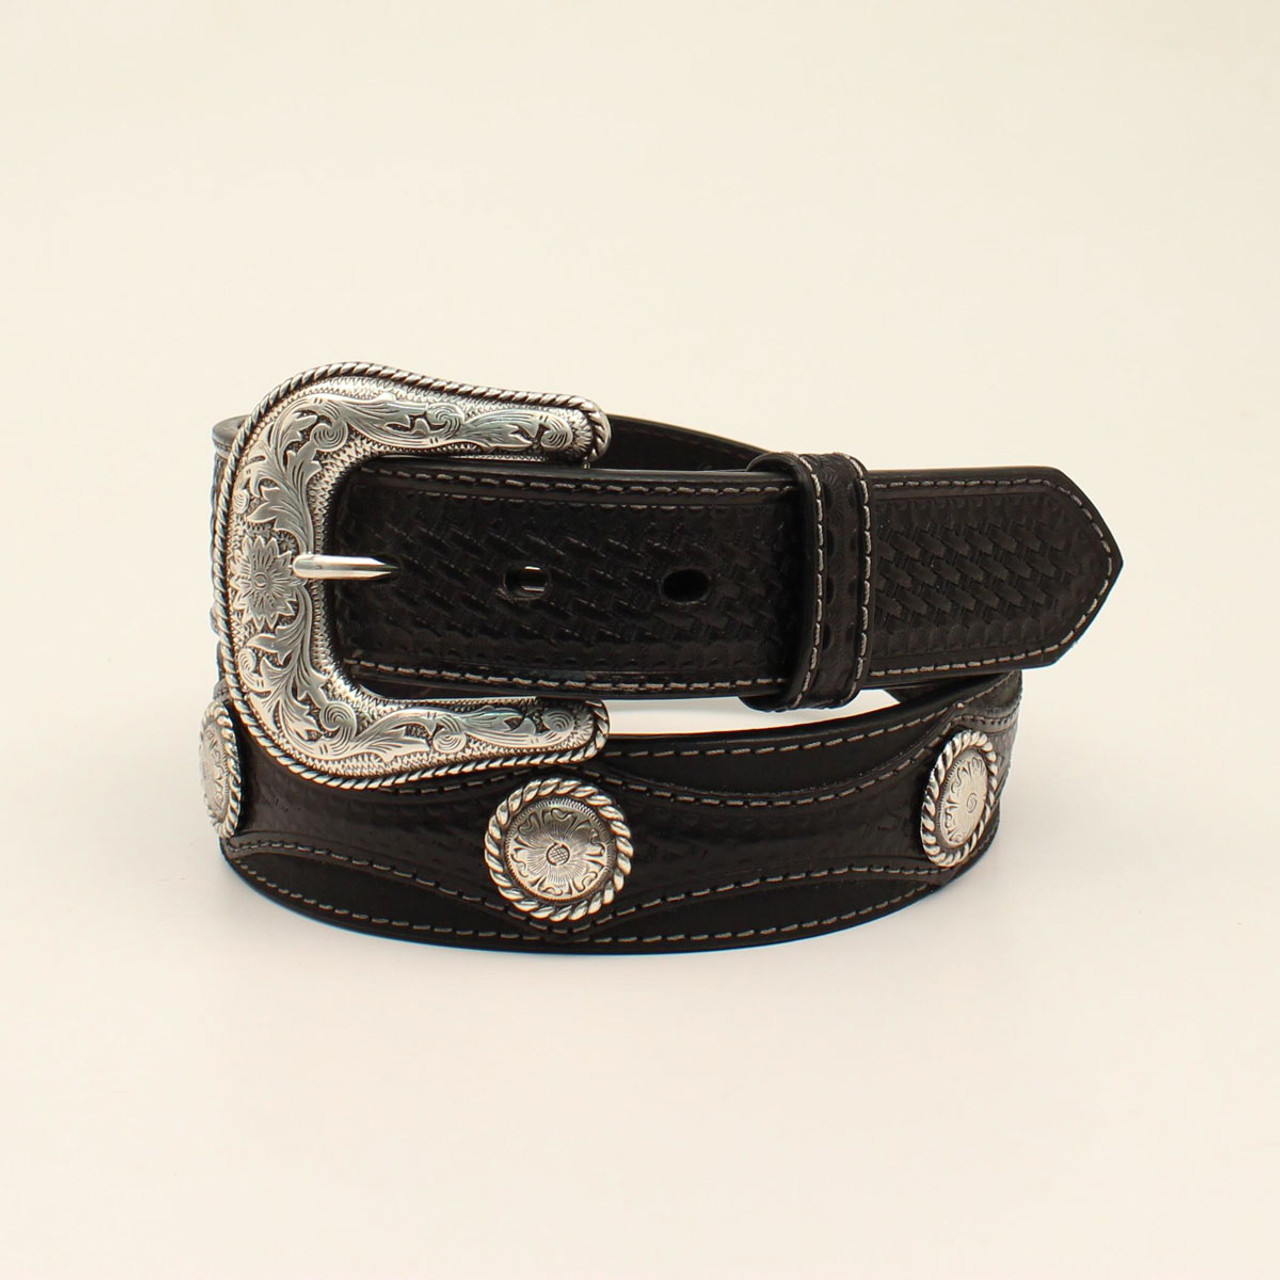 ACCESSORIES BELT KIDS NOCONA SILVER CONCHO WITH 3 CROSSES N4440602